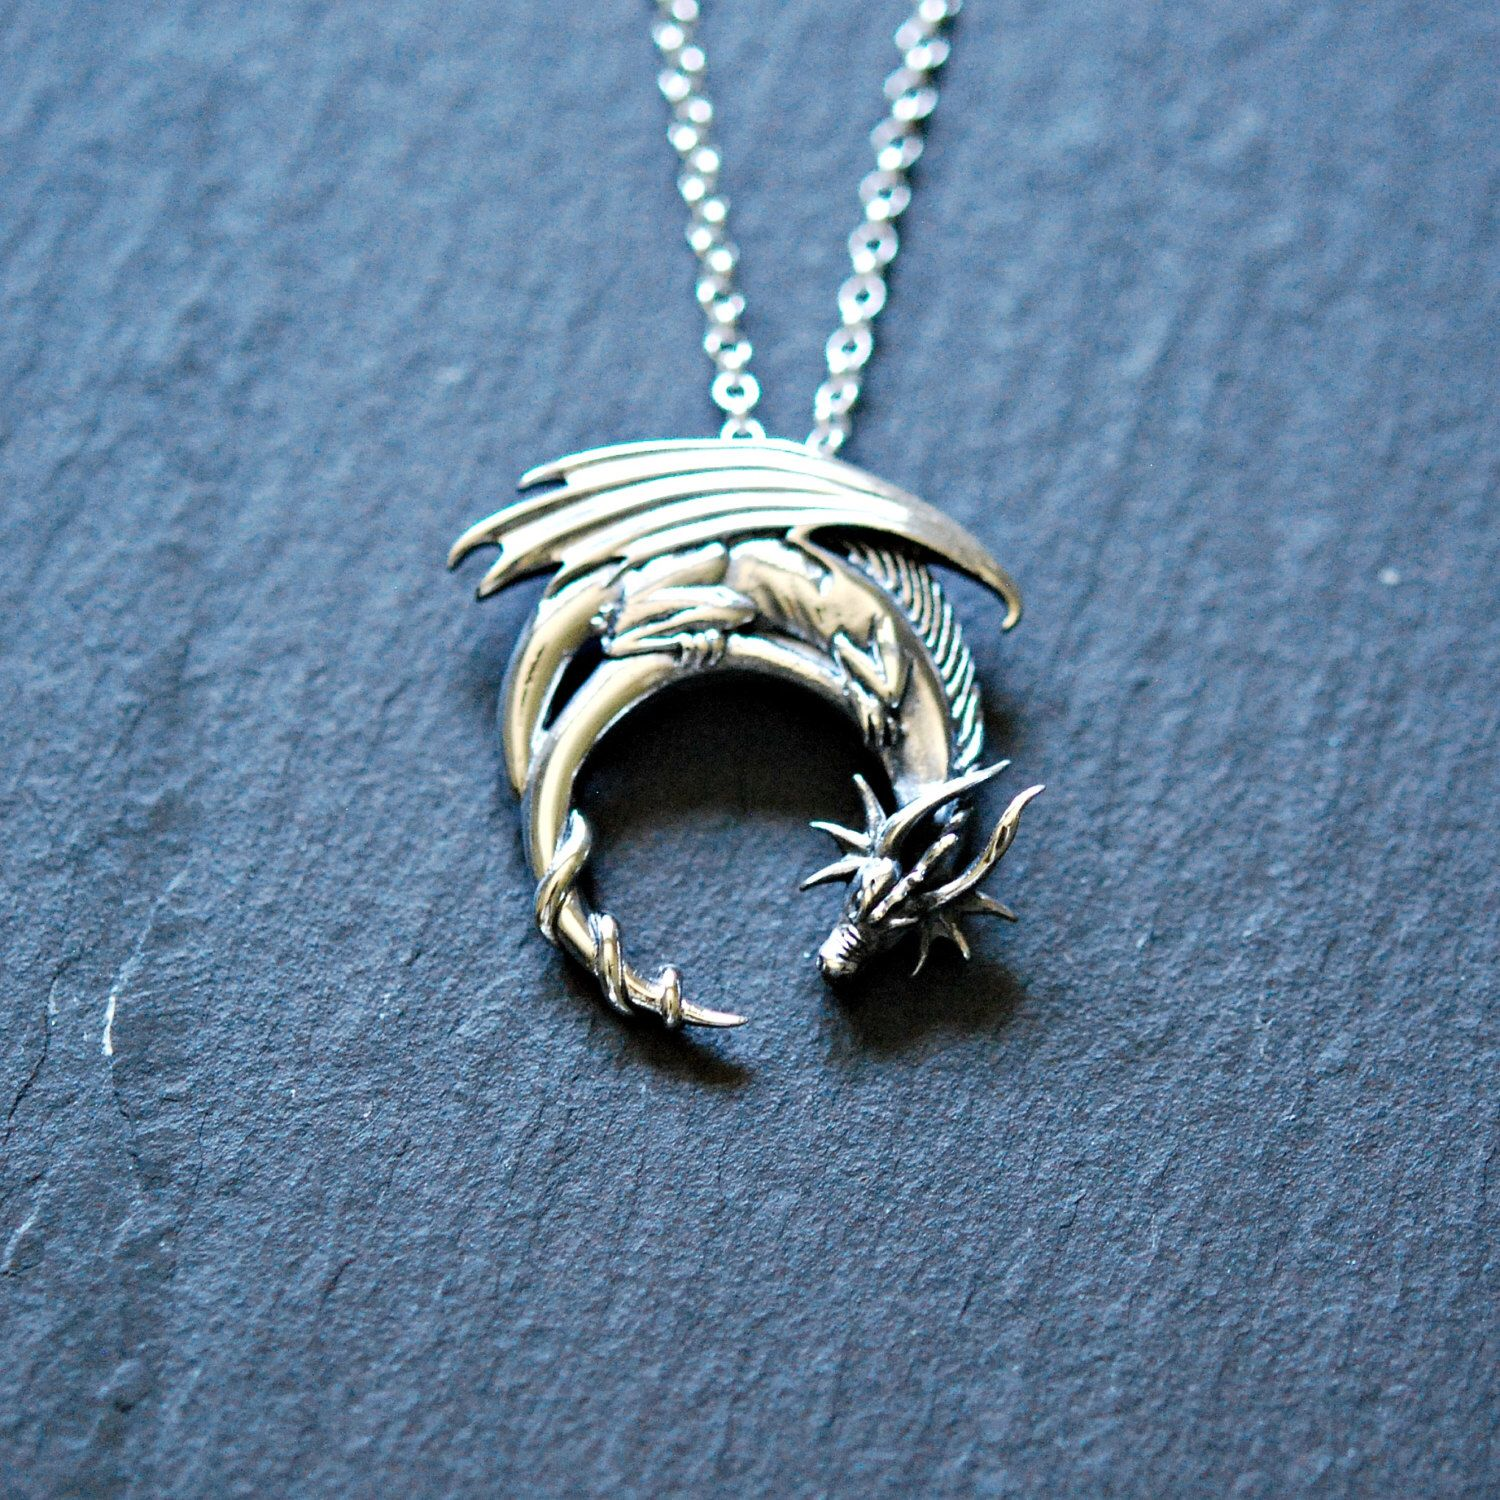 Sterling silver dragon necklace winged dragon on moon pendant sterling silver dragon necklace pre order winged dragon on moon pendant medieval symbolic necklace dragon jewelry aloadofball Gallery